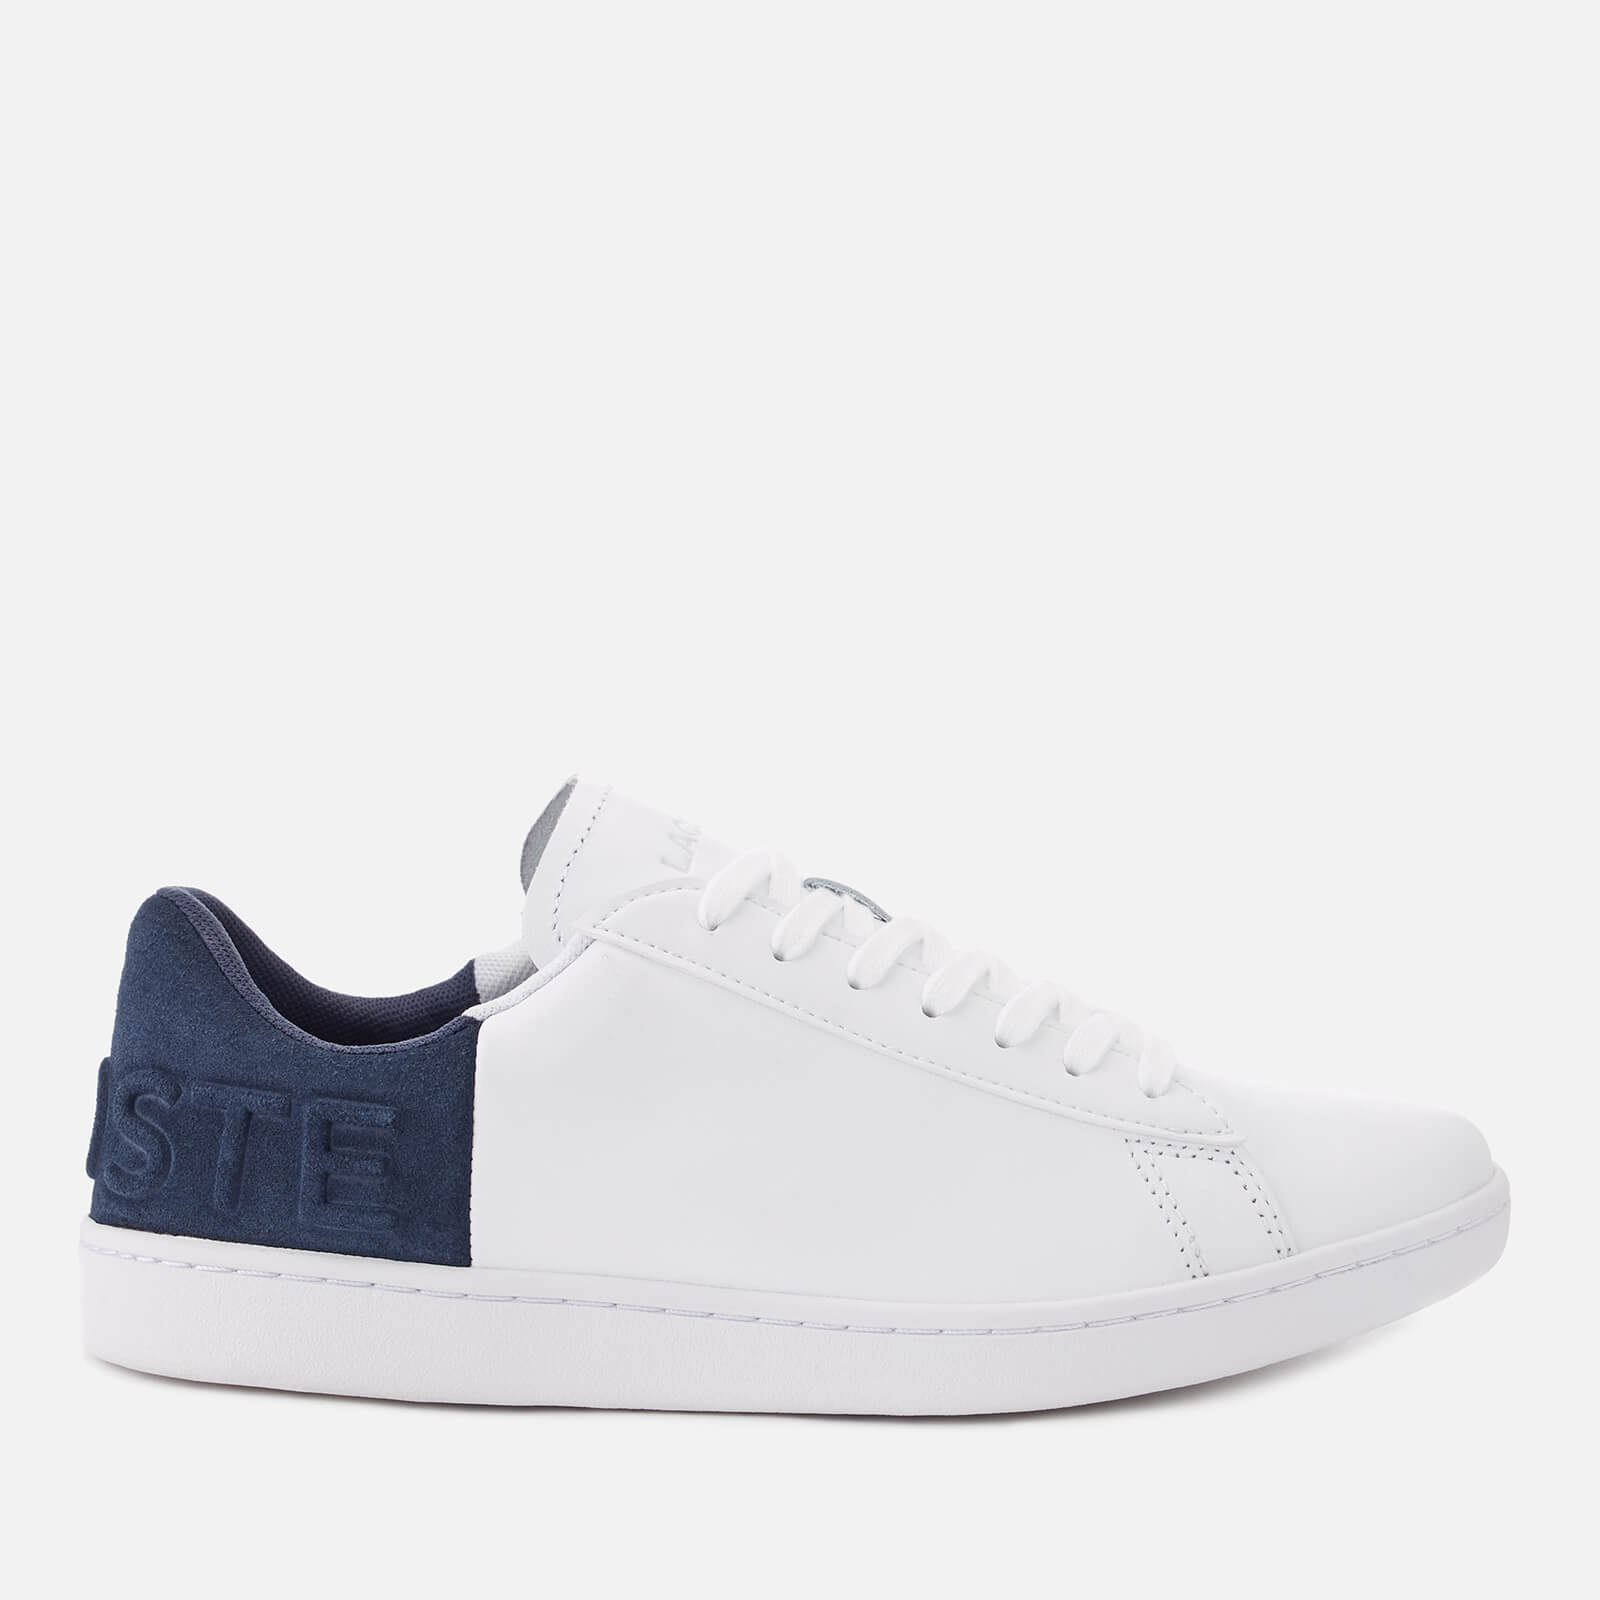 d46f0eea91fd5 Lacoste Women s Carnaby Evo 318 3 Leather Suede Trainers - White Navy -  Free UK Delivery over £50